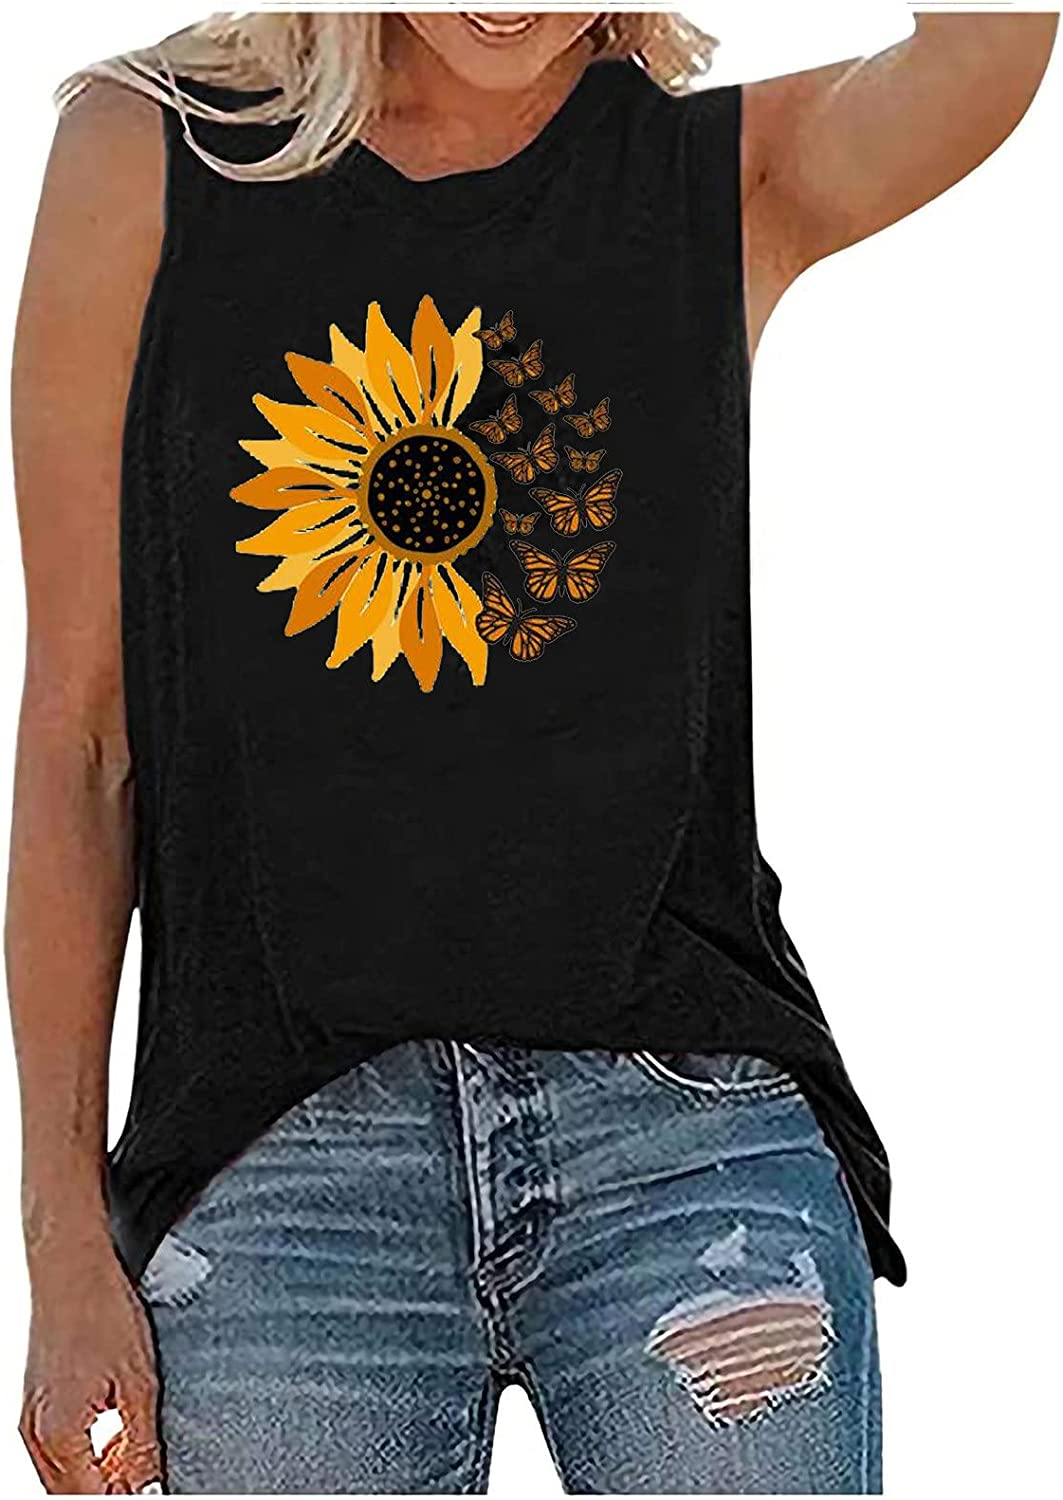 Womens Summer Tops Product Tank Casual Plus Size Loose S Fit Omaha Mall